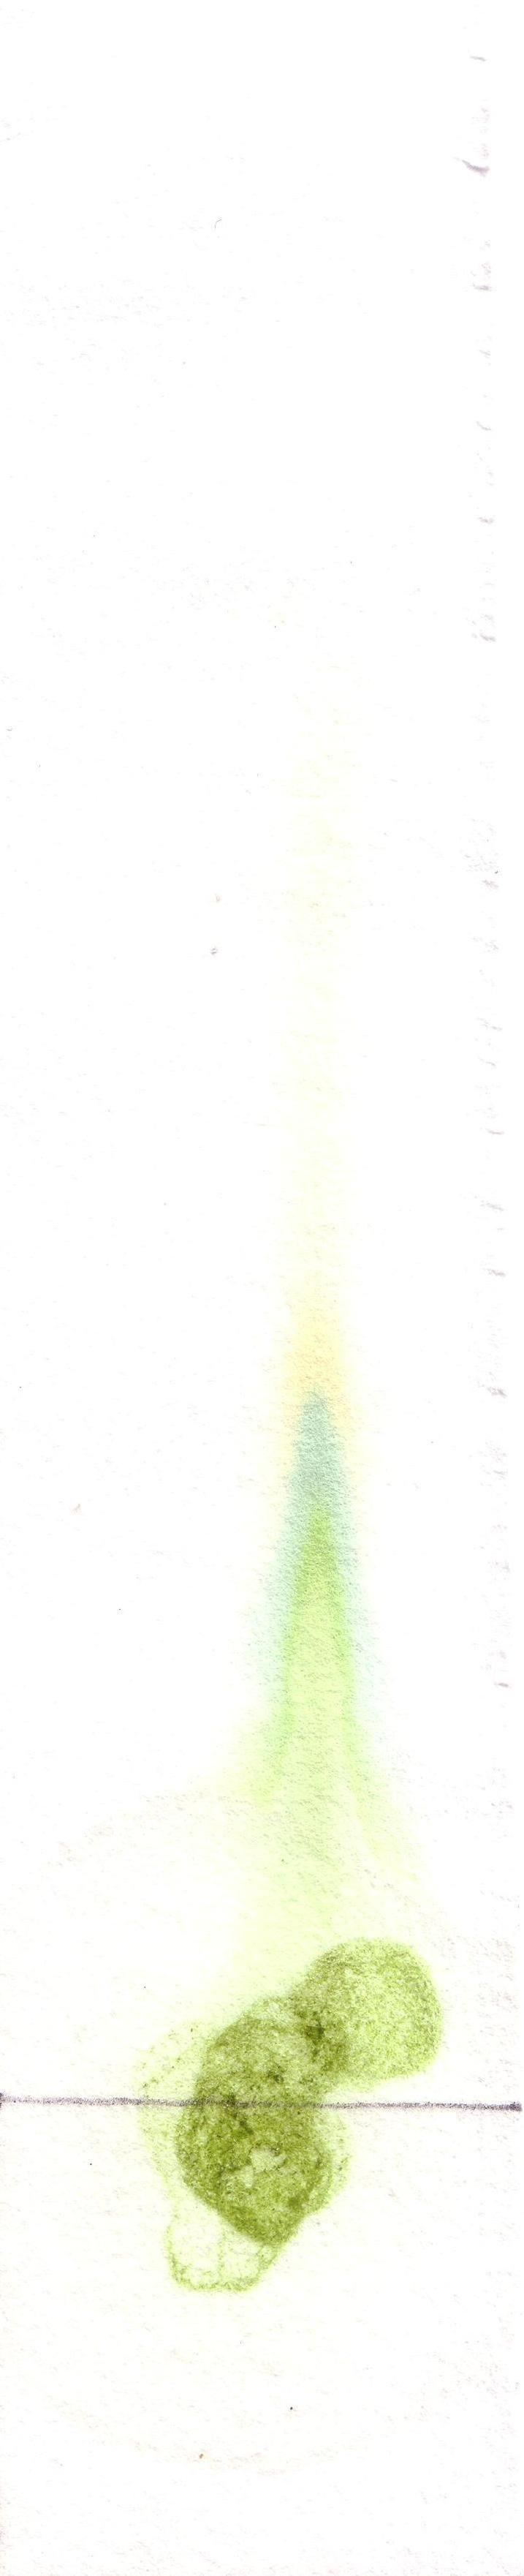 Paper chromatography of some spinach leaf extract shows the various pigments present in their chloroplasts.